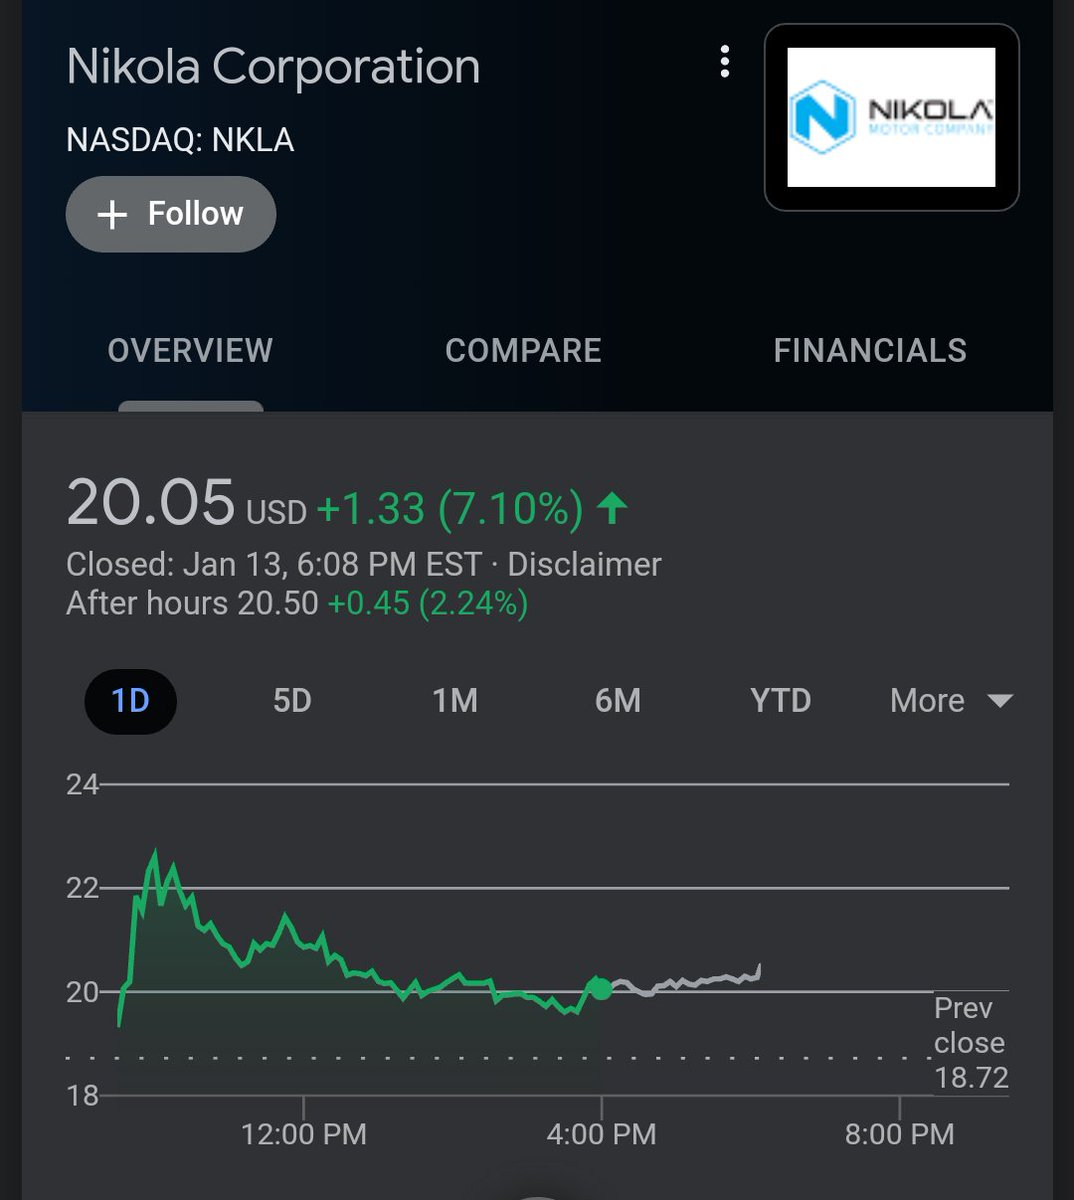 If I had seen Nikola's stock price jump this morning I definitely would have gone and look at put option prices.  $NKLA https://t.co/hXgpJlGzQt